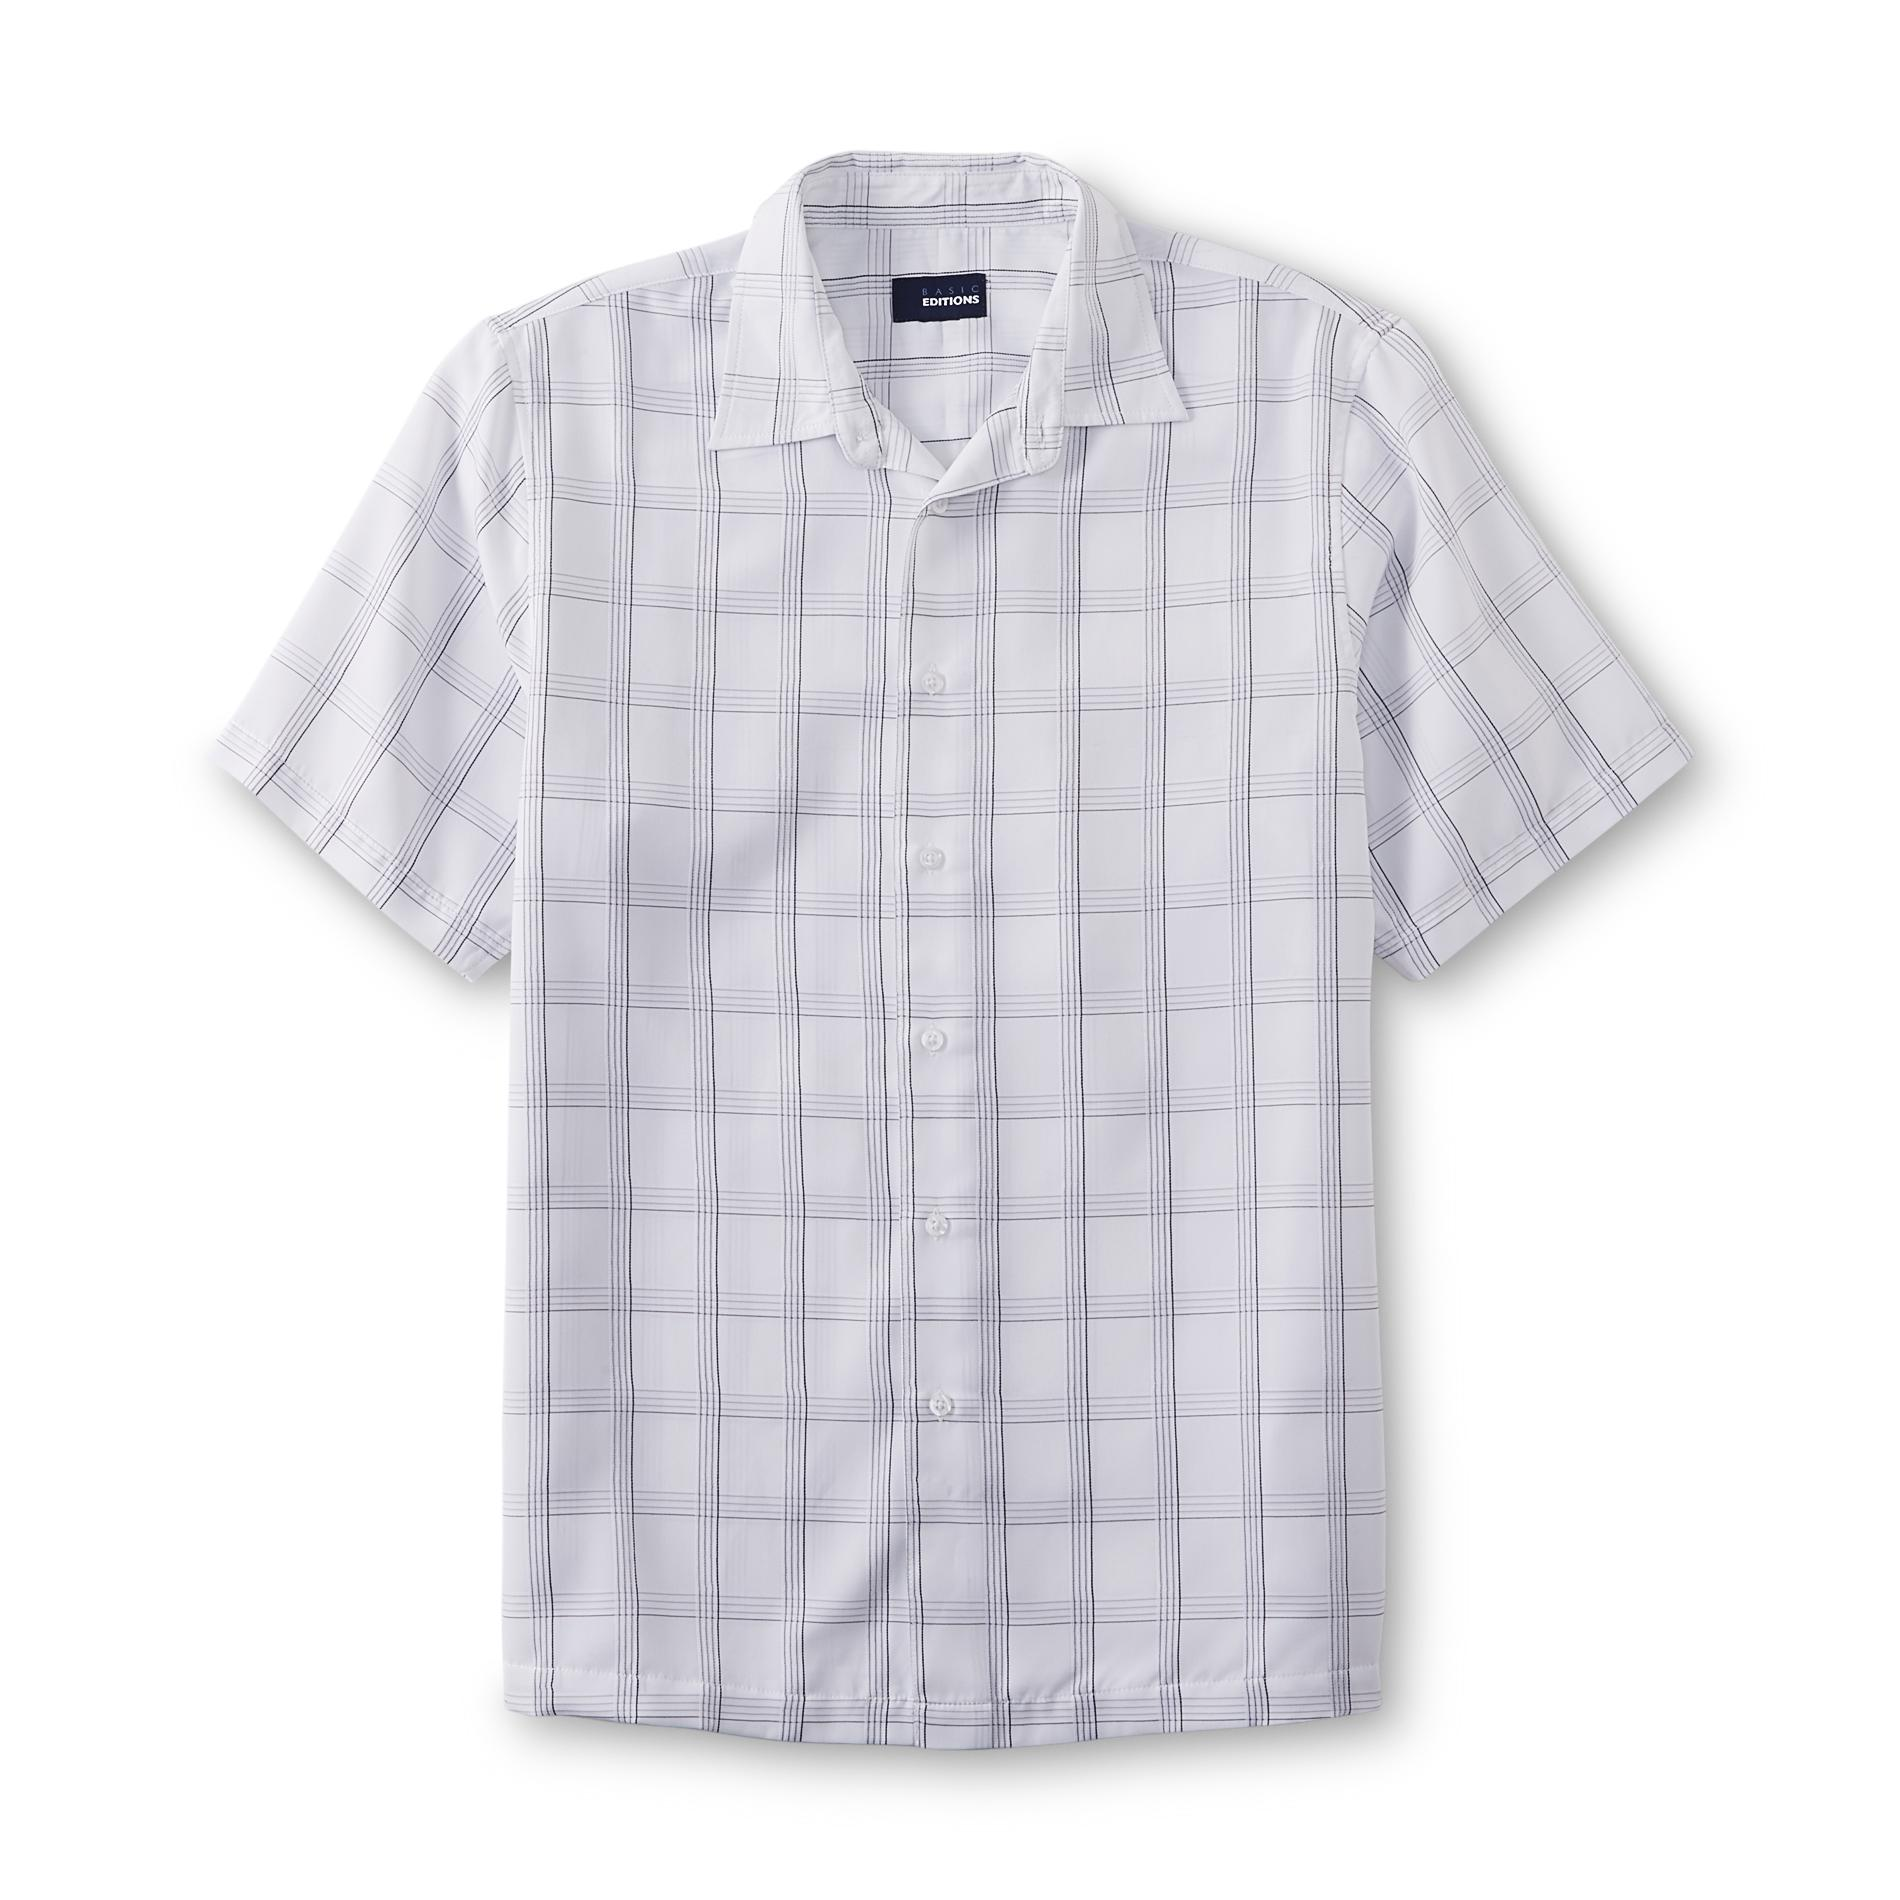 Basic Editions  Men's Woven Button-Front Shirt - Plaid